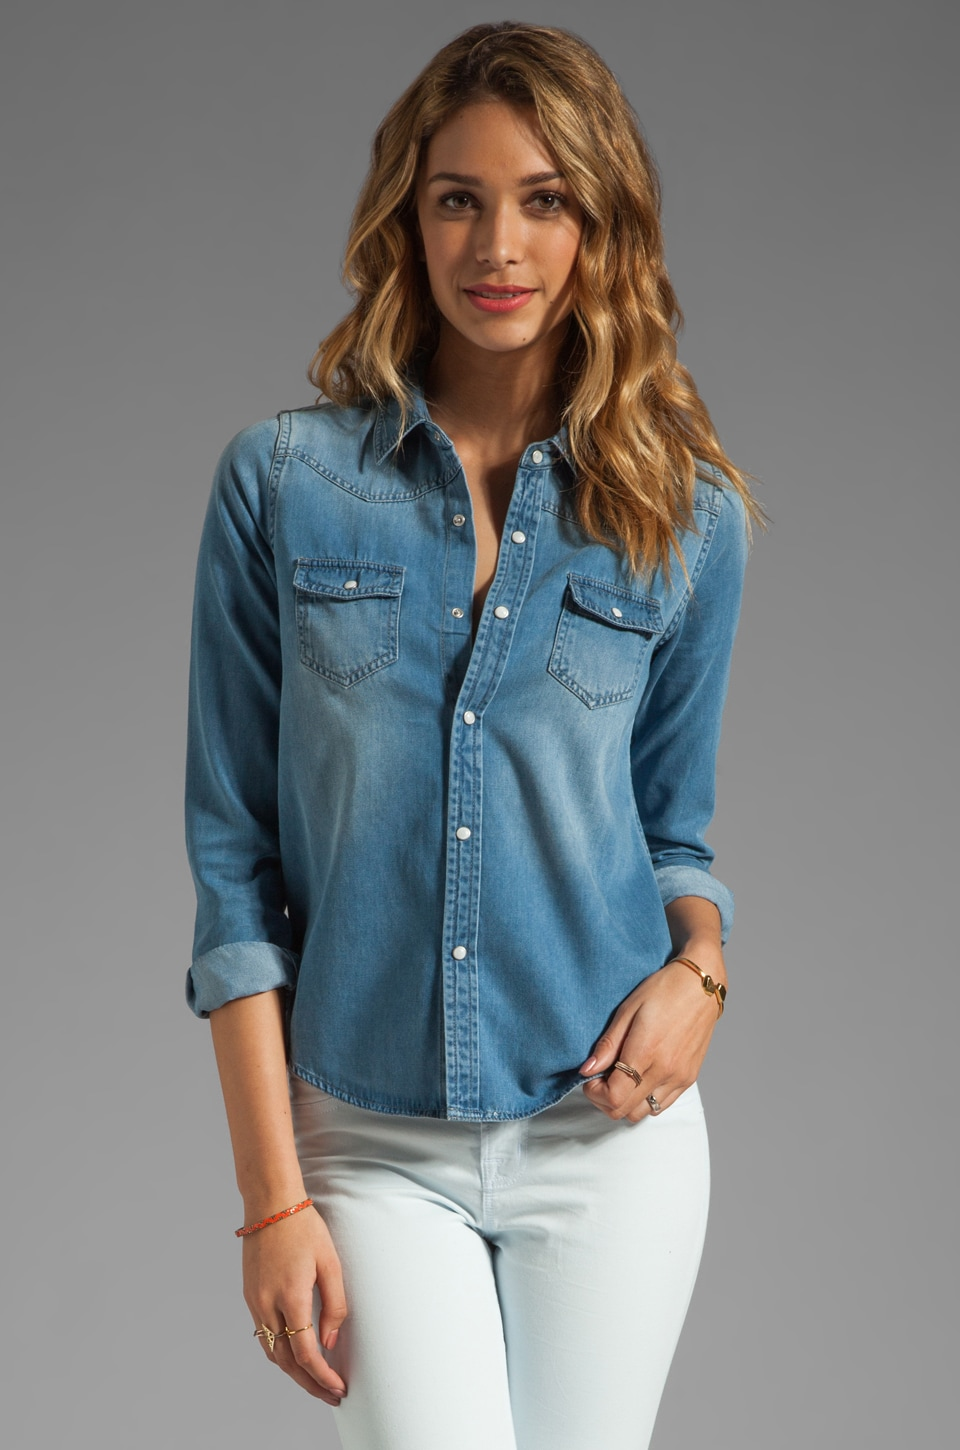 Joe's Jeans Western Denim Shirt in Amy